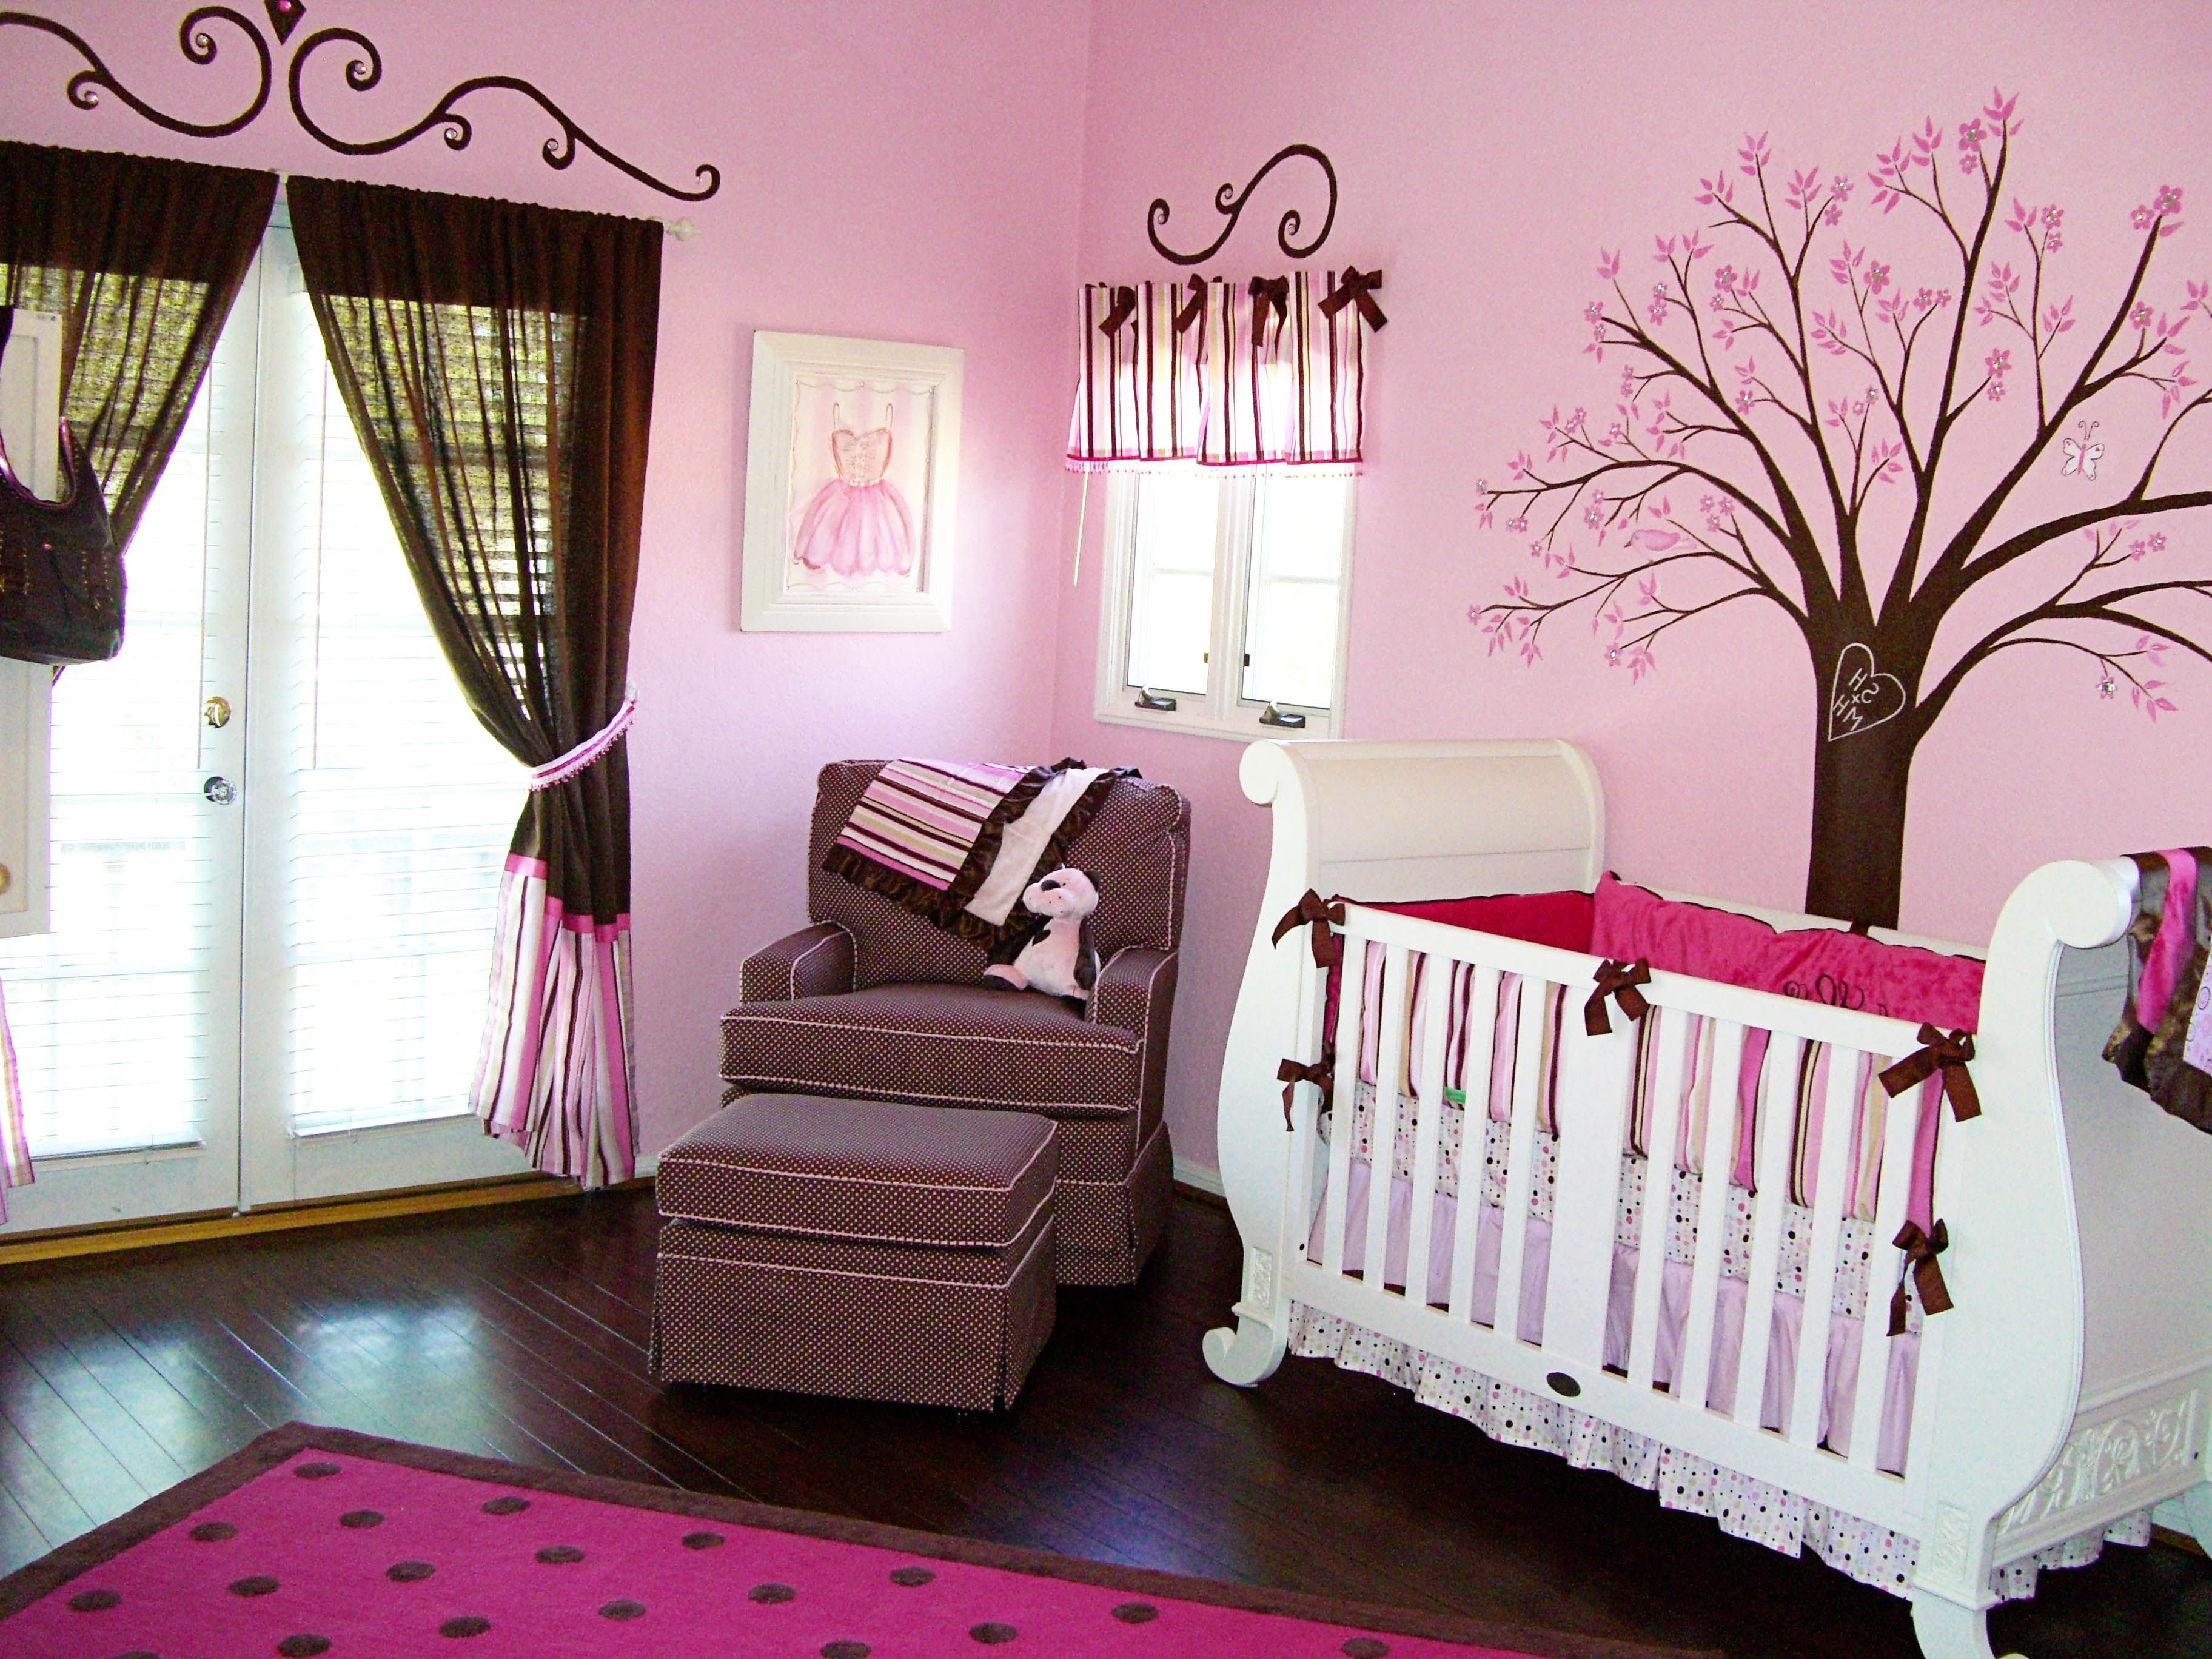 10 Gorgeous Ideas For Baby Girl Nursery baby nursery ideas ideas for baby nurseries nursery boy small 2021